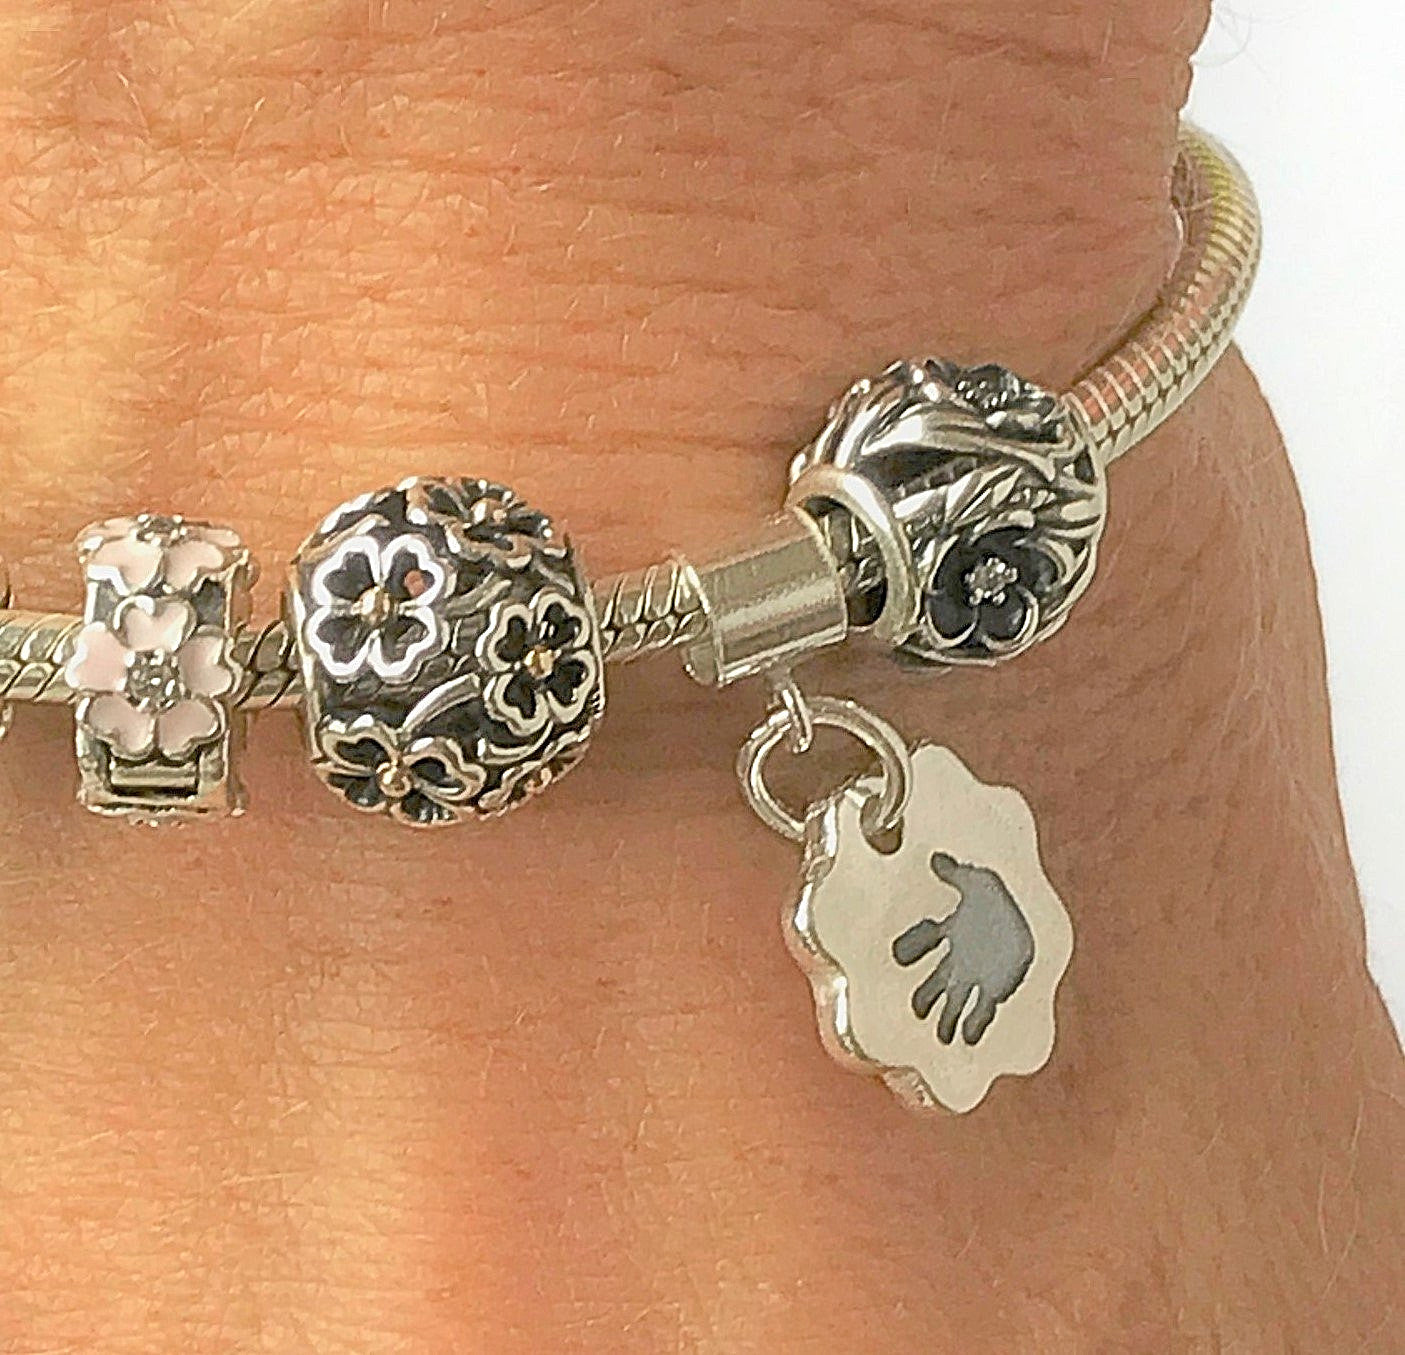 Handprint Double-Sided Bracelet Charm